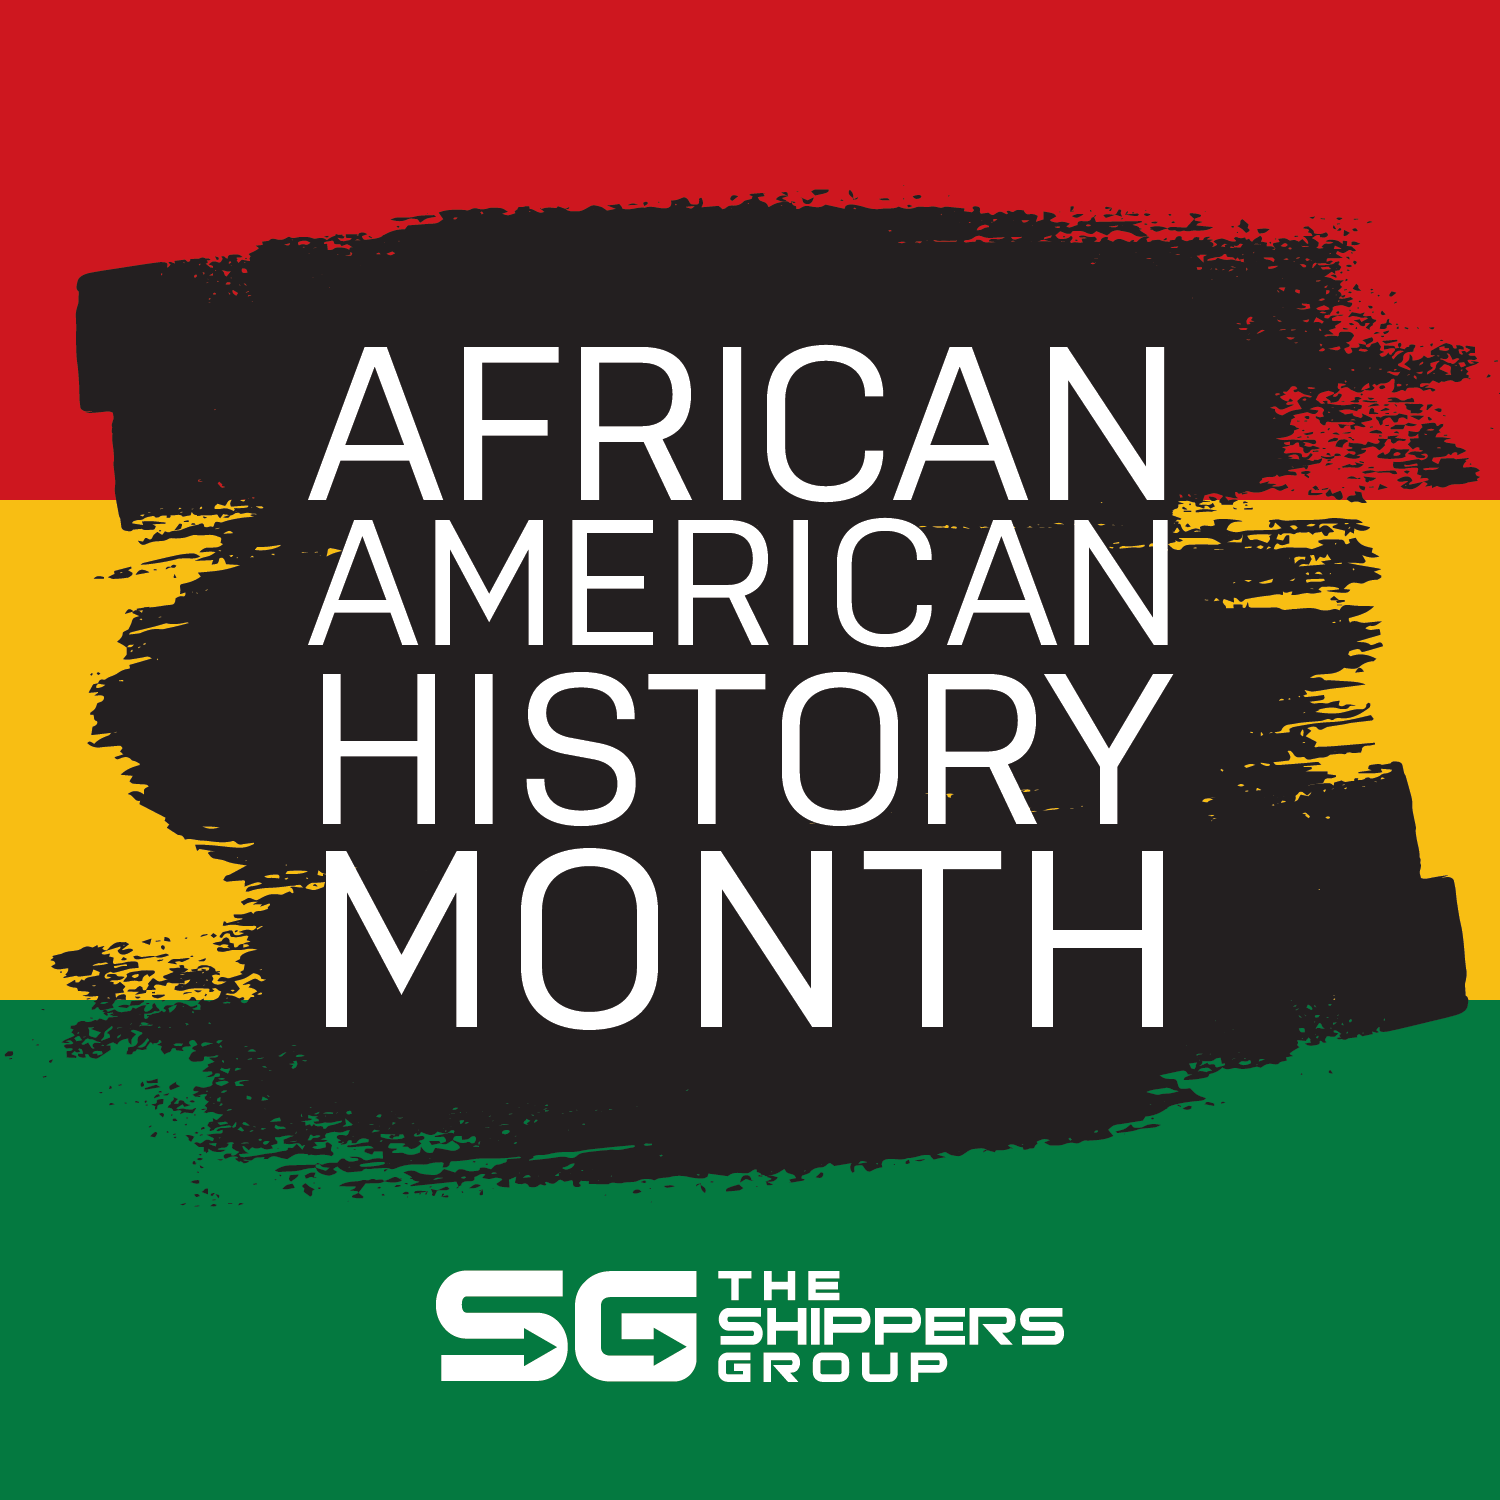 The Shippers Group Celebrates African American History Month